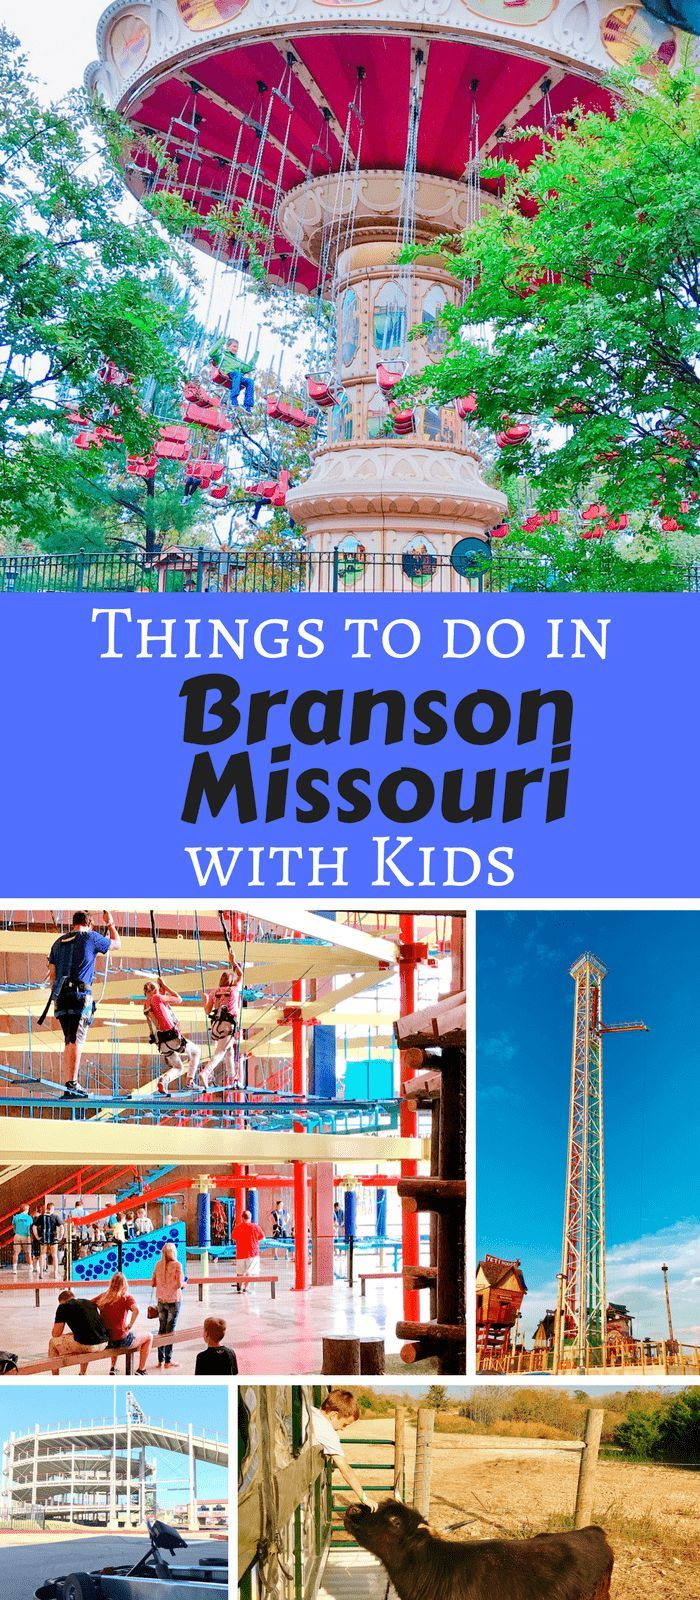 10 Fun Things To Do In Branson Mo With Kids Branson Vacation Kids Vacation Branson Missouri Vacation